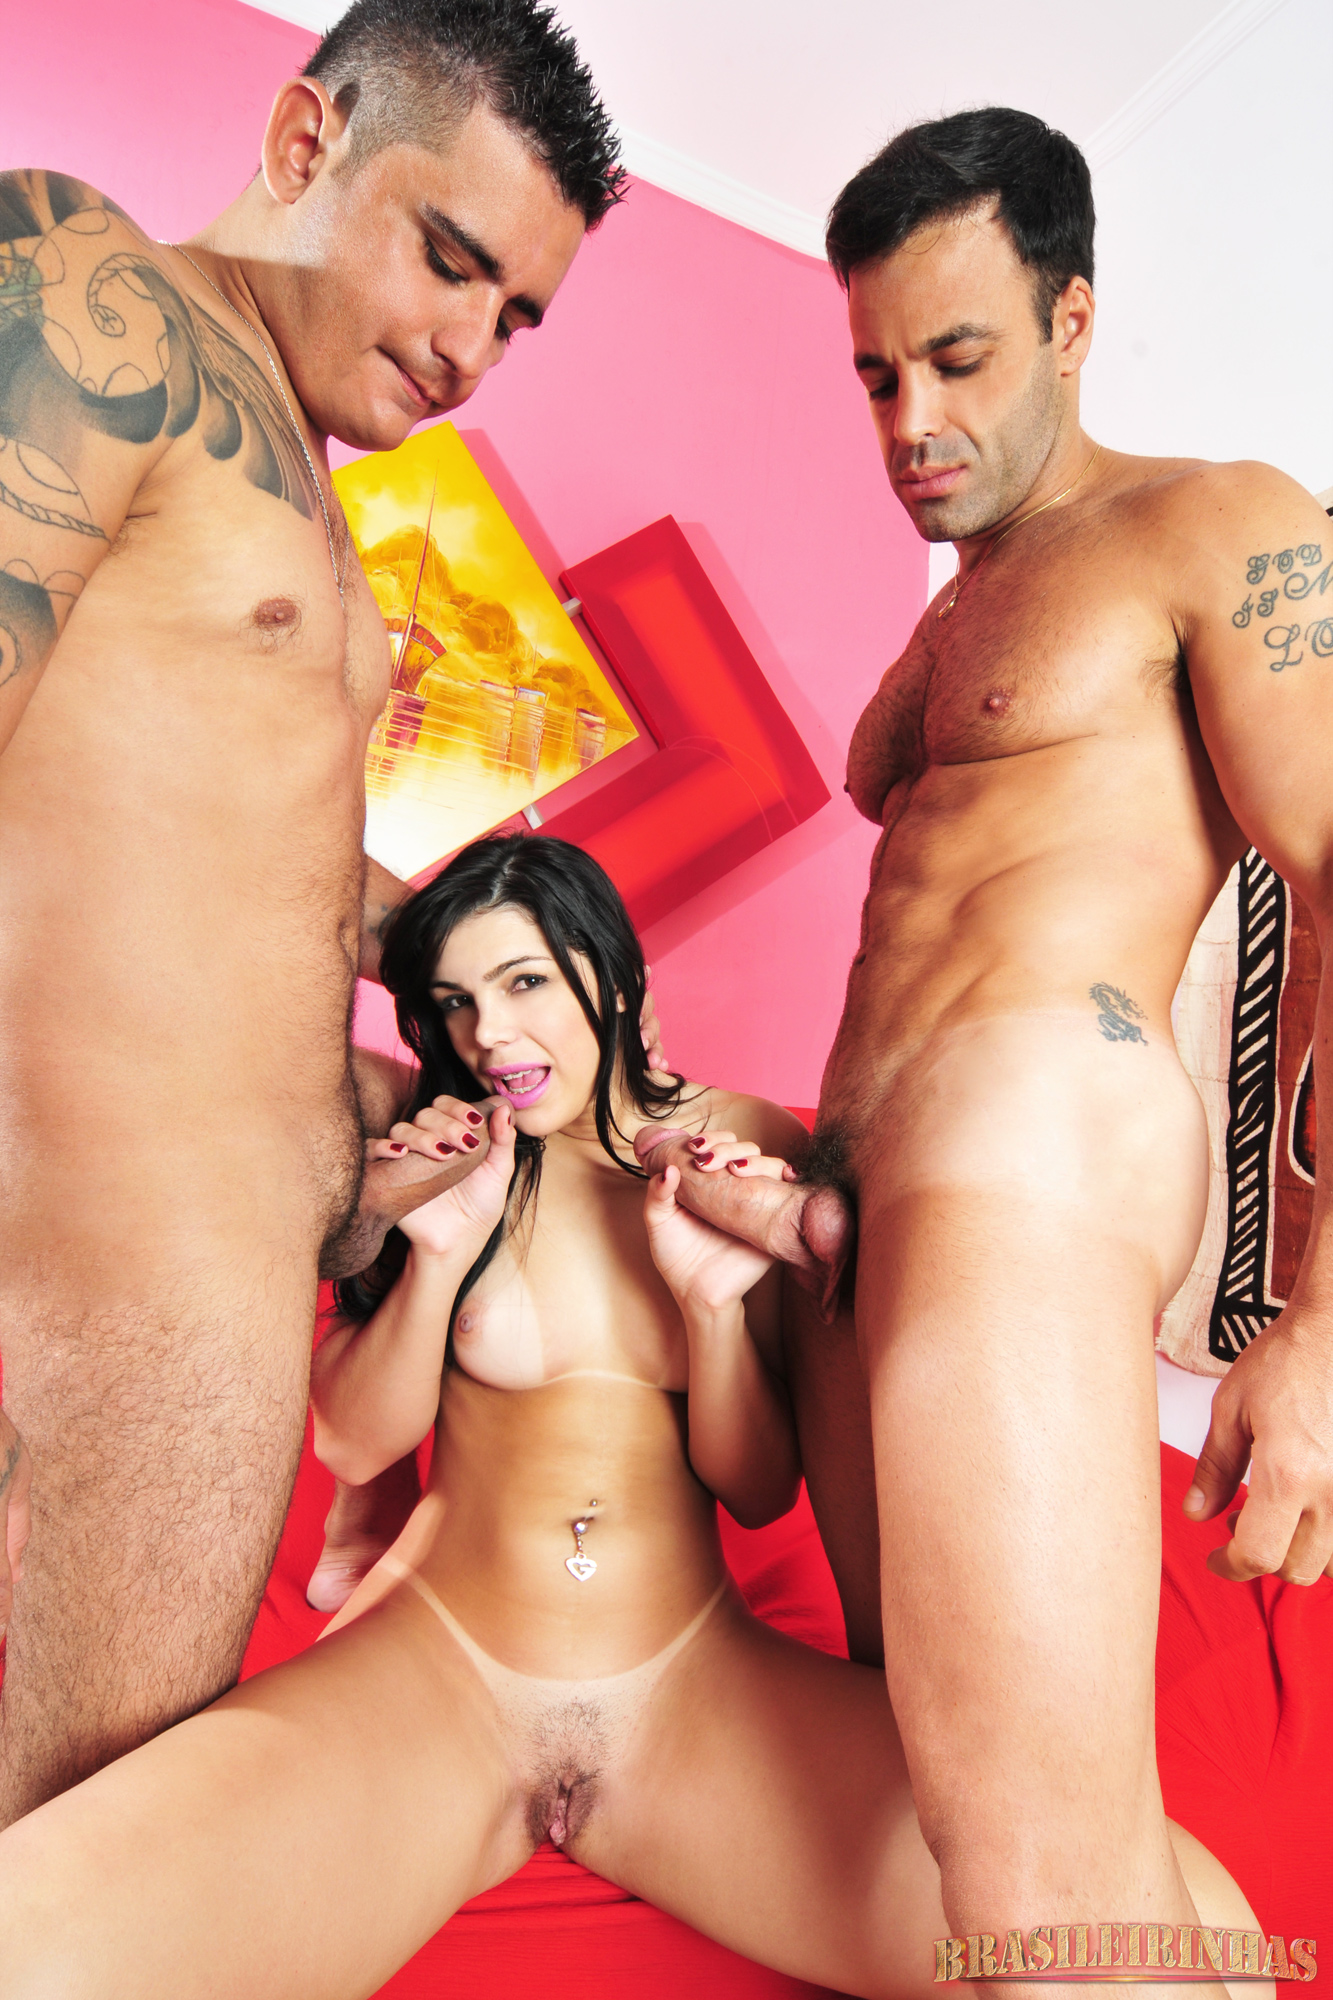 Know, Filme porno hd completo would